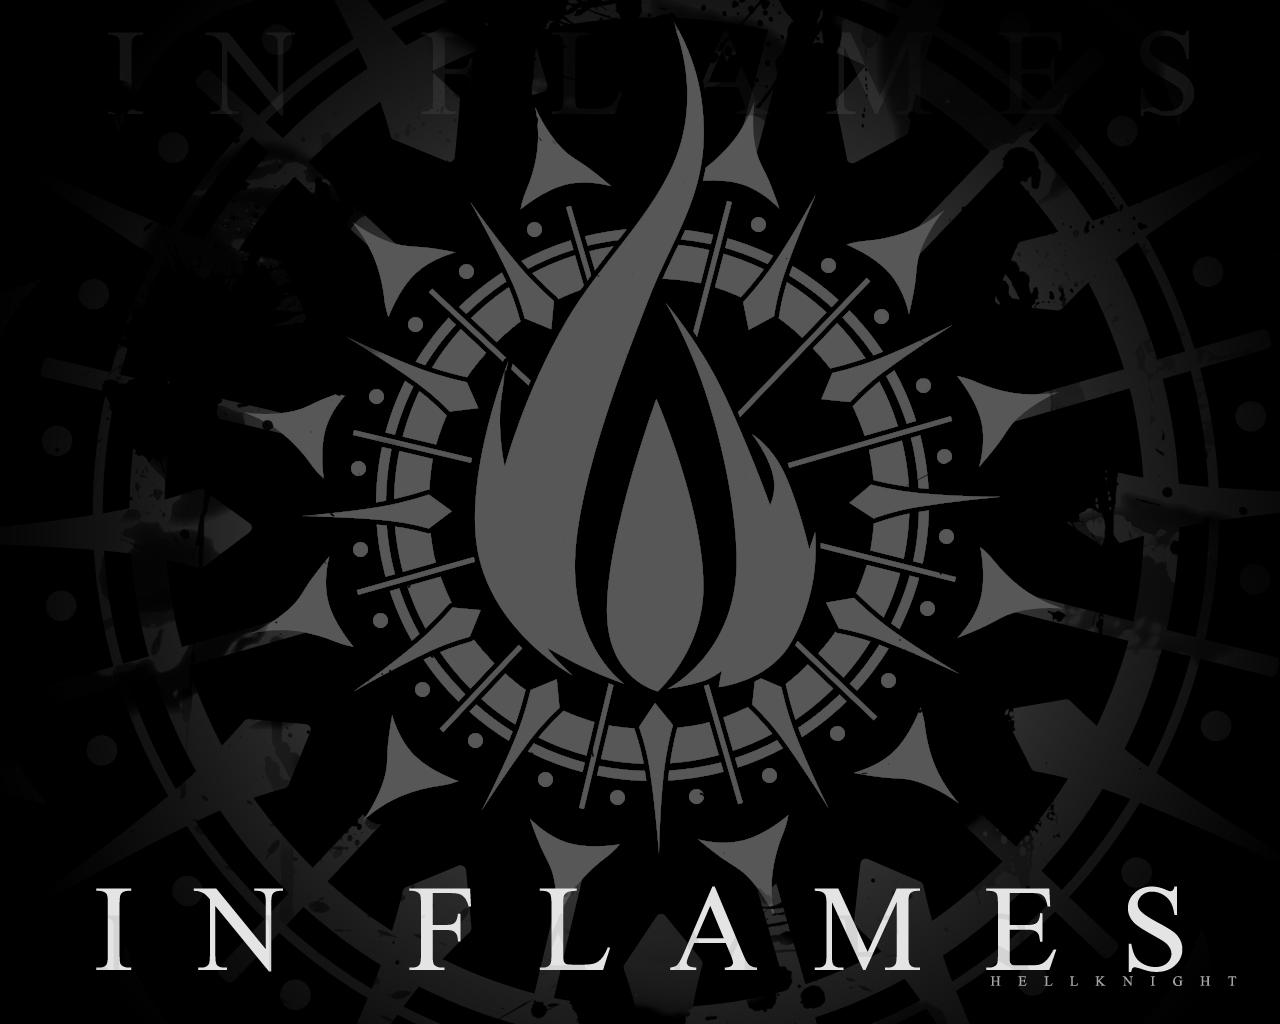 In Flames Wallpaper Black by Hellknight10 In Flames Wallpaper Black by  Hellknight10